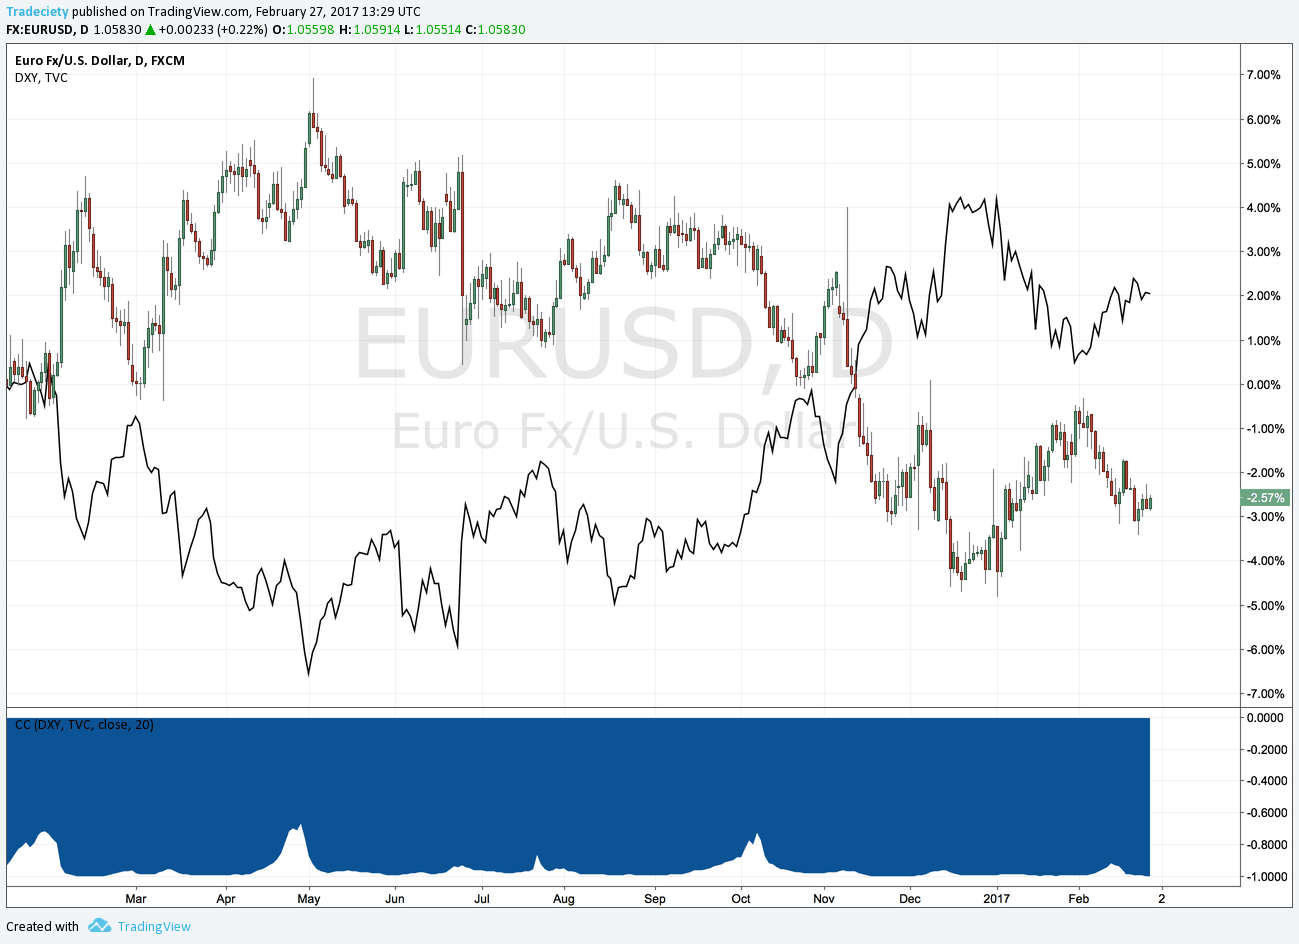 How To Read Currency Correlation Tables - blogger.com